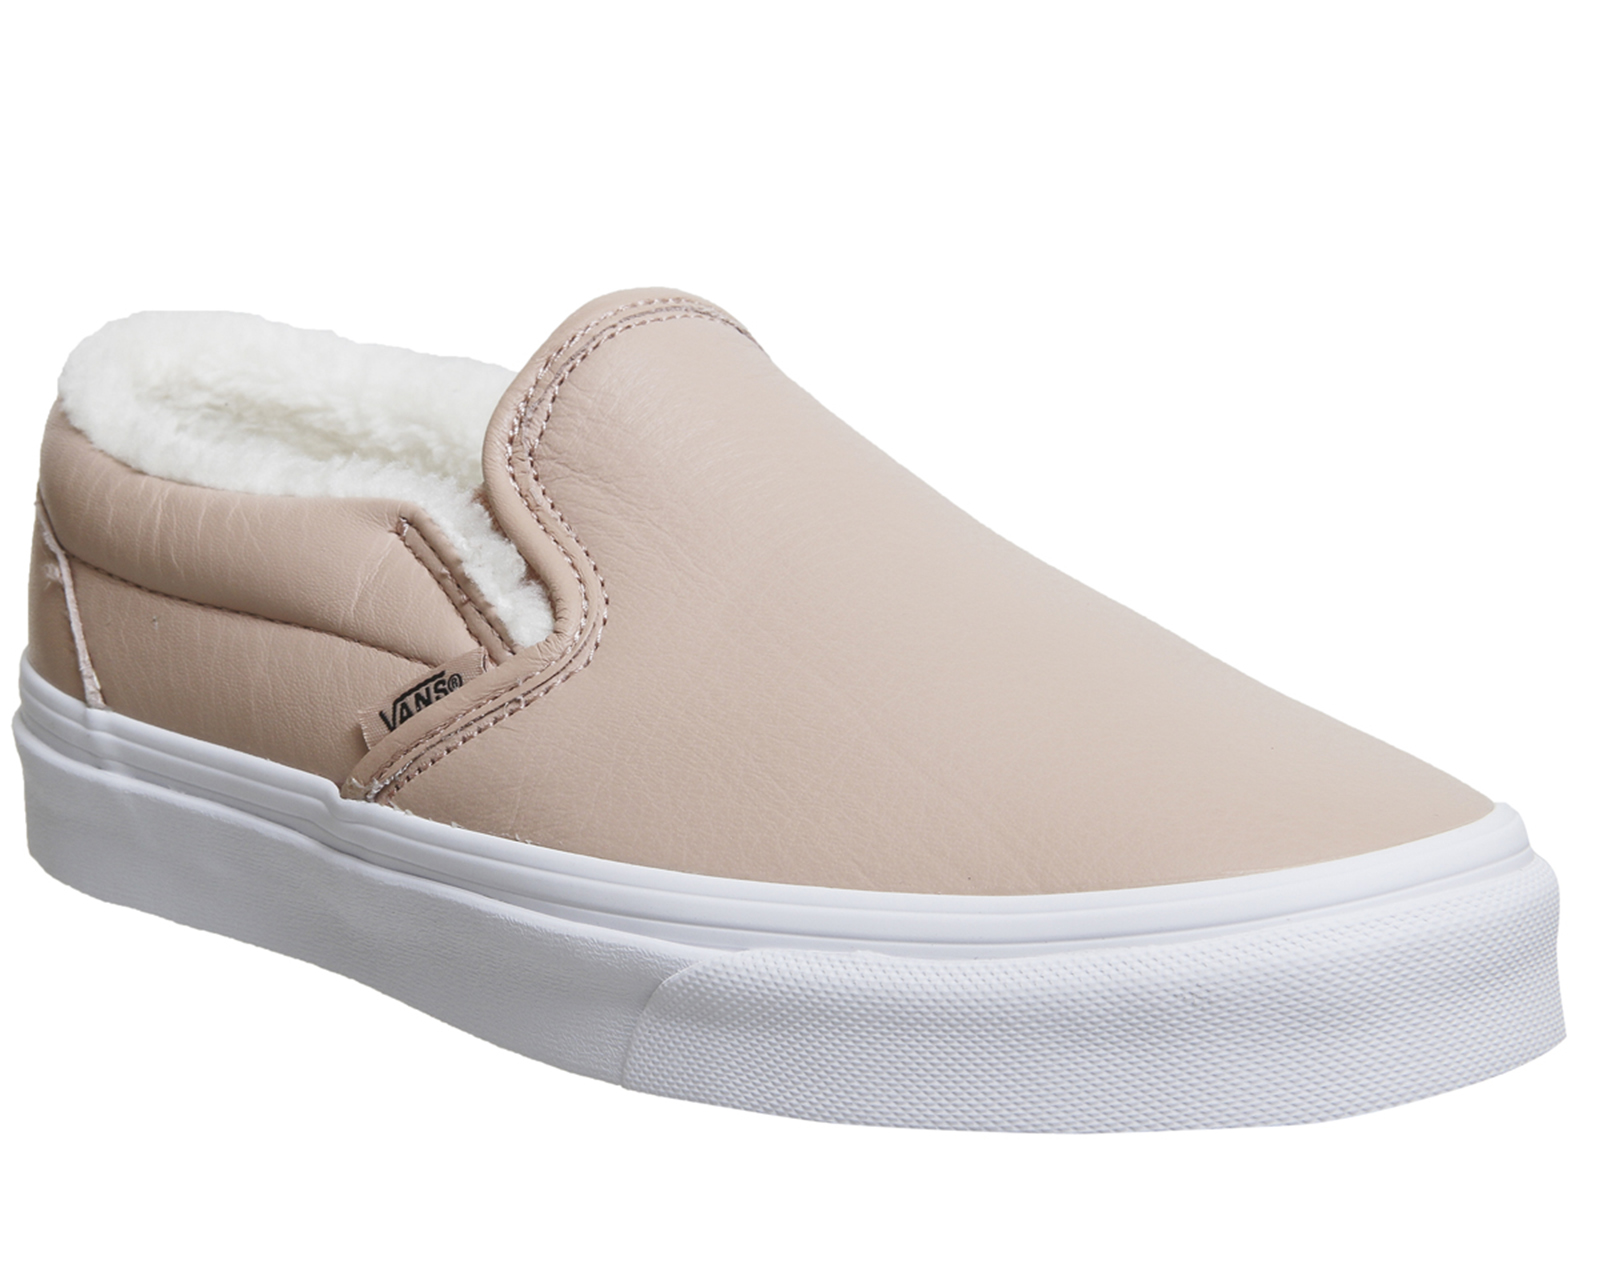 da786c38a600 Details about Womens Vans Vans Classic Slip On MAHOGANY ROSE TRUE WHITE  SHEARLING Trainers Sho